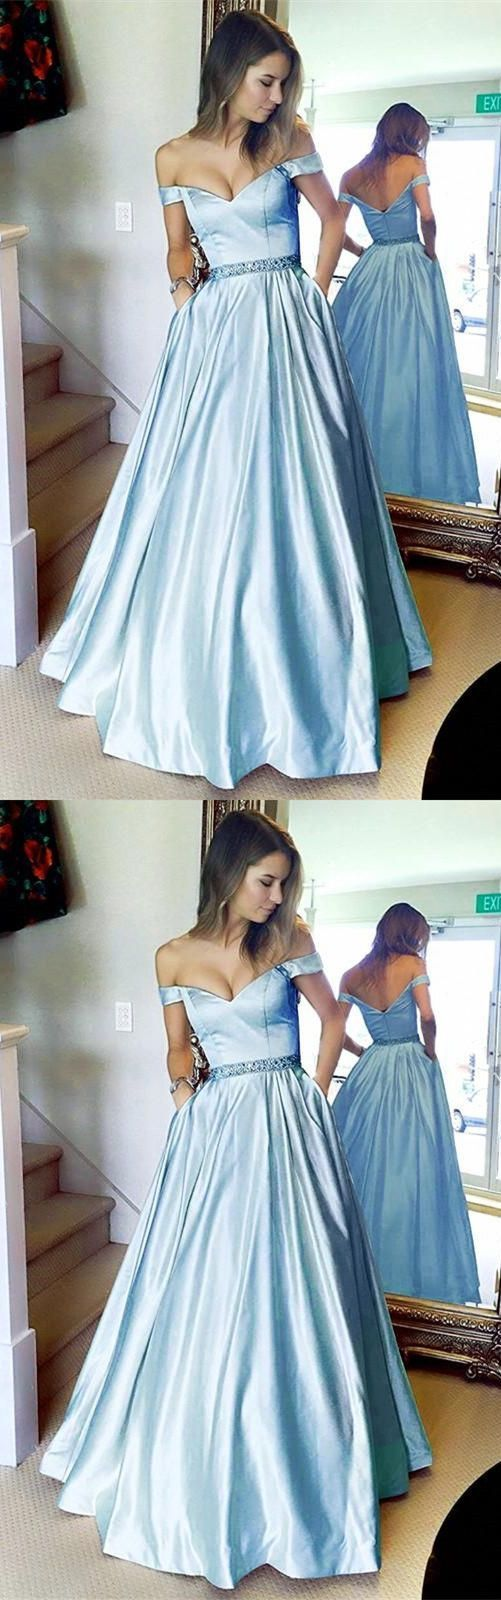 Off the shoulder light sky blue long prom dress elegant prom dress